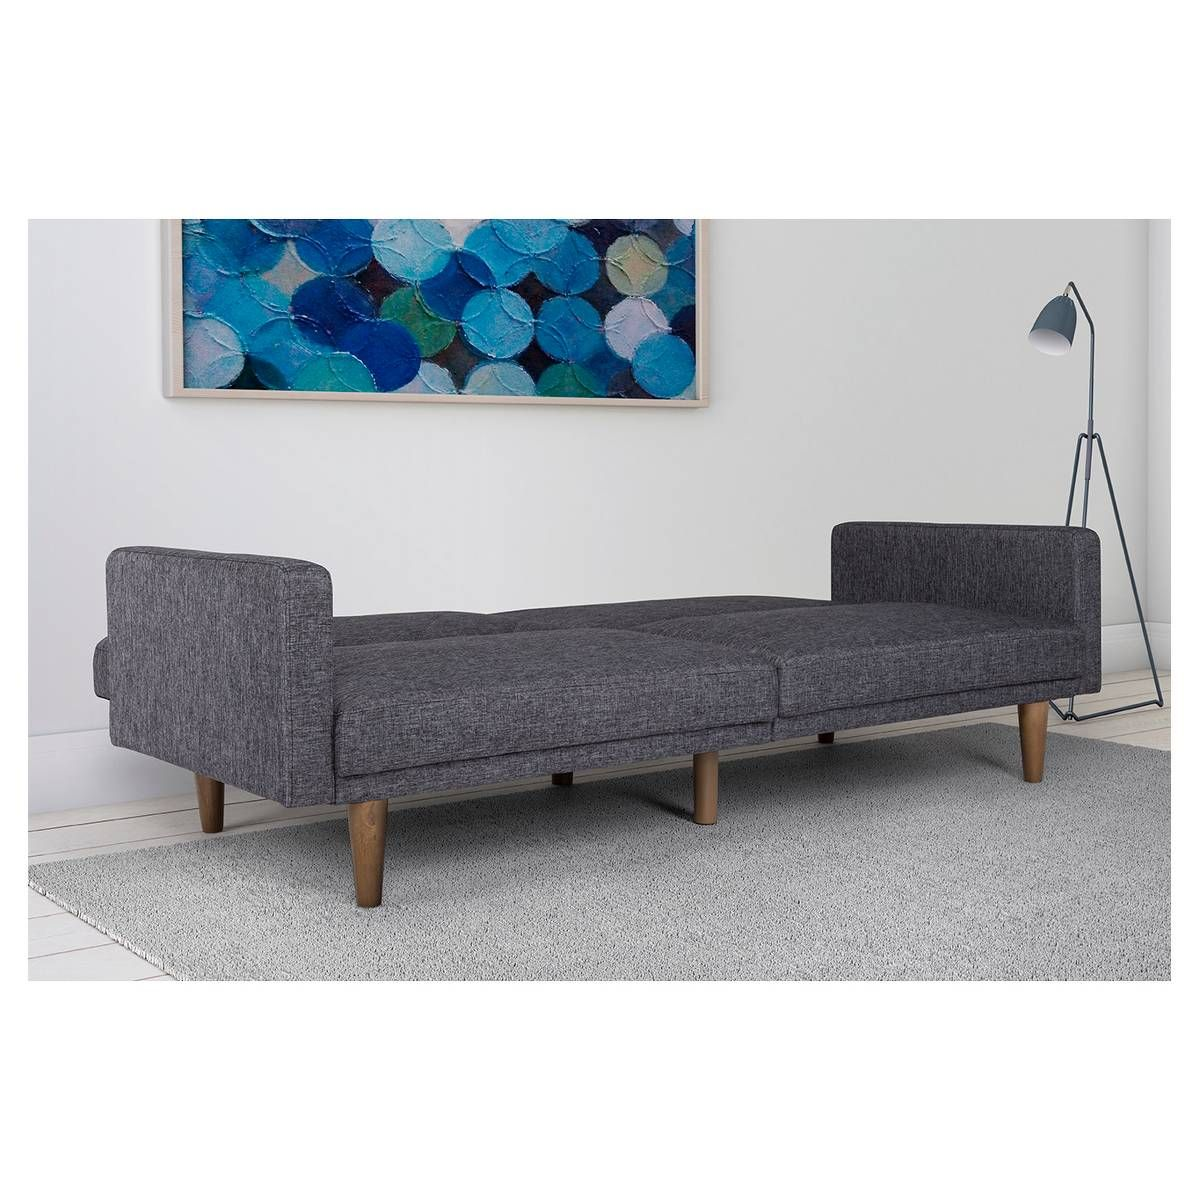 Find Product Information Ratings And Reviews For Paxson Futon Dorel Home Products Online On Target Com